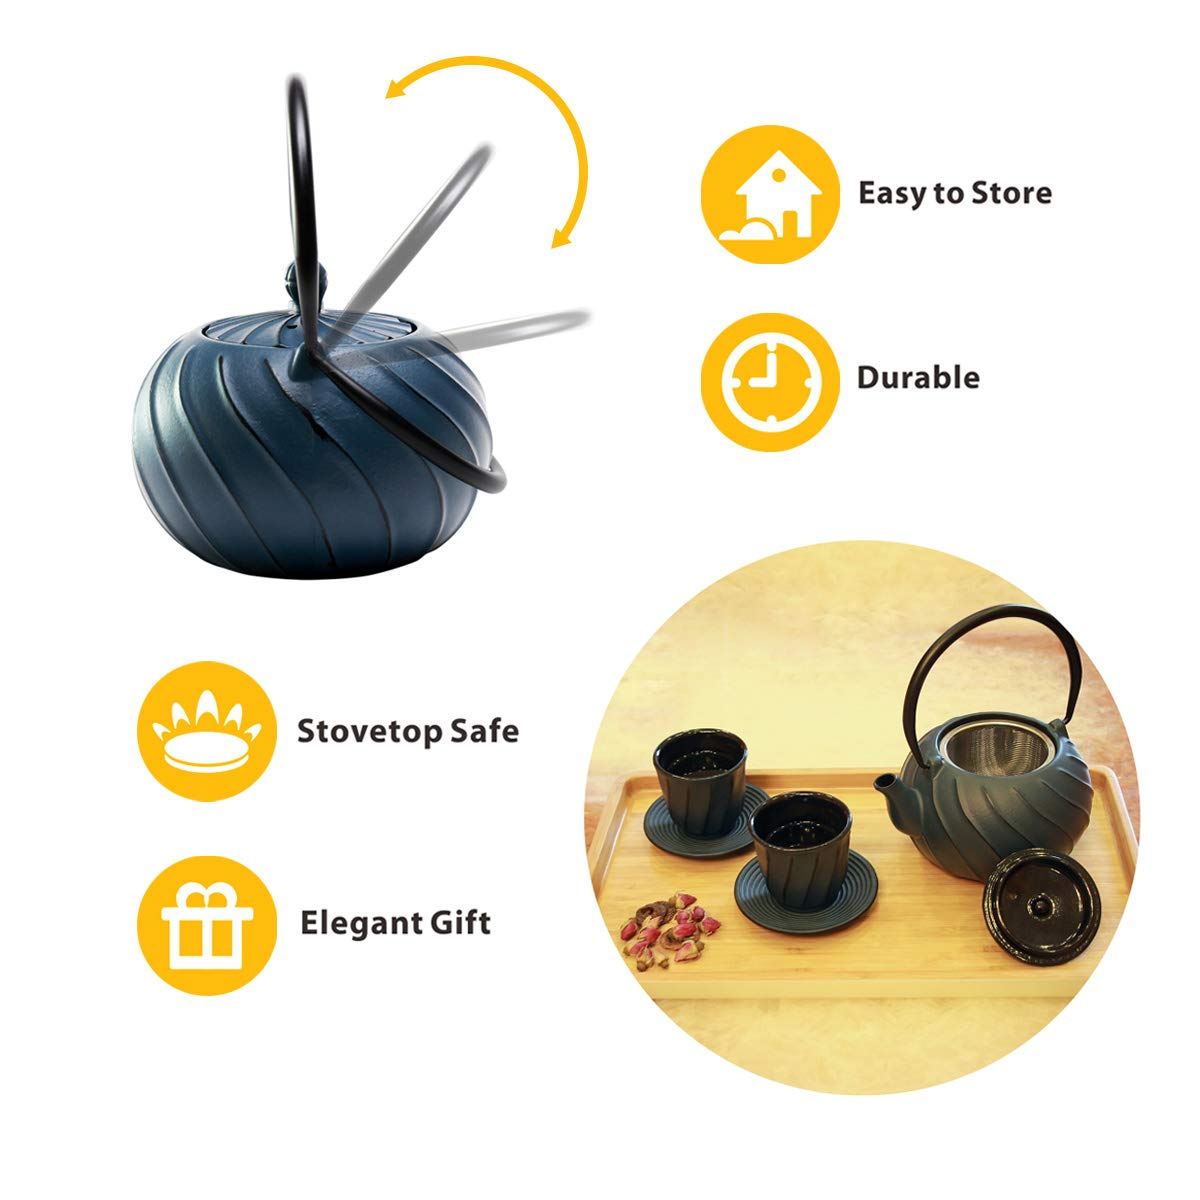 Tea Kettle, TOPTIER Japanese Cast Iron Teapot with Stainless Steel Tea Infuser | Durable Cast Iron Kettle Set [Wave Design] Coated with Full Enameled Interior for 30 Ounce / 900 ml, Navy Blue